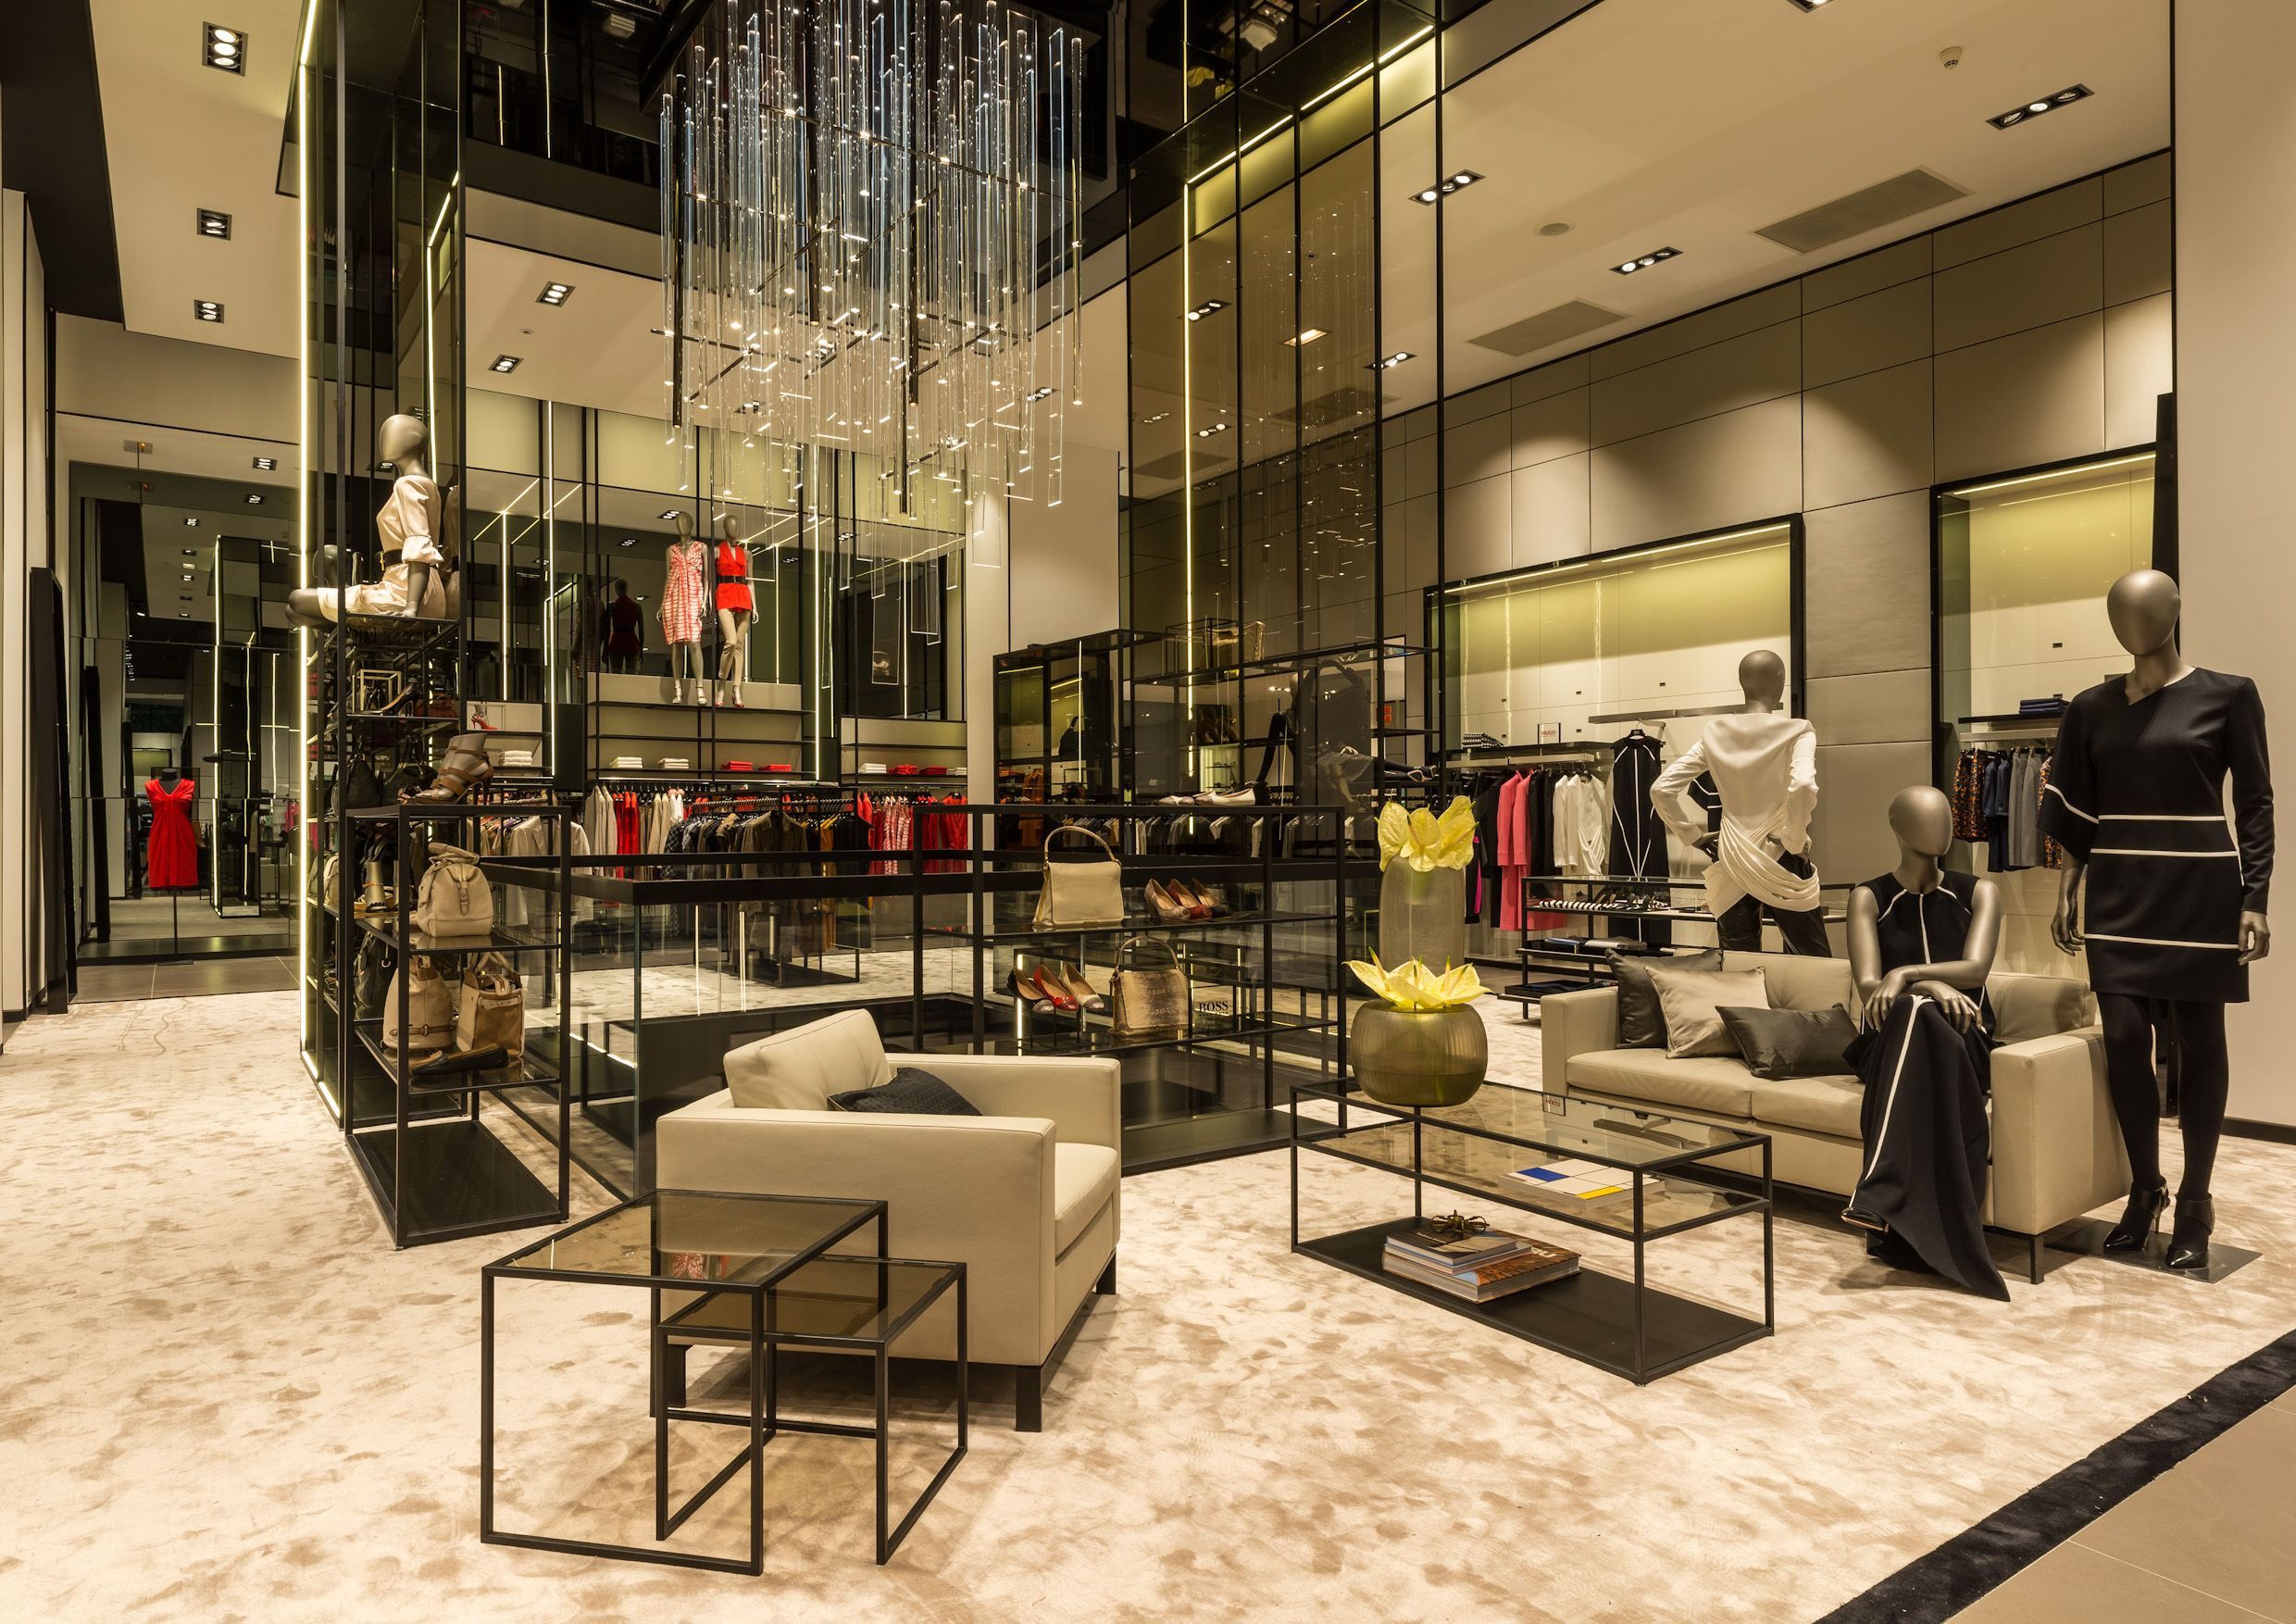 Couchtisch Boss A New Generation Of Shopping Experience Is Waiting For You At Our Largest Boss Flagship Store Worldwide On The Champs Él… | Elegante Damenmode, Hugo Boss, Damenmode